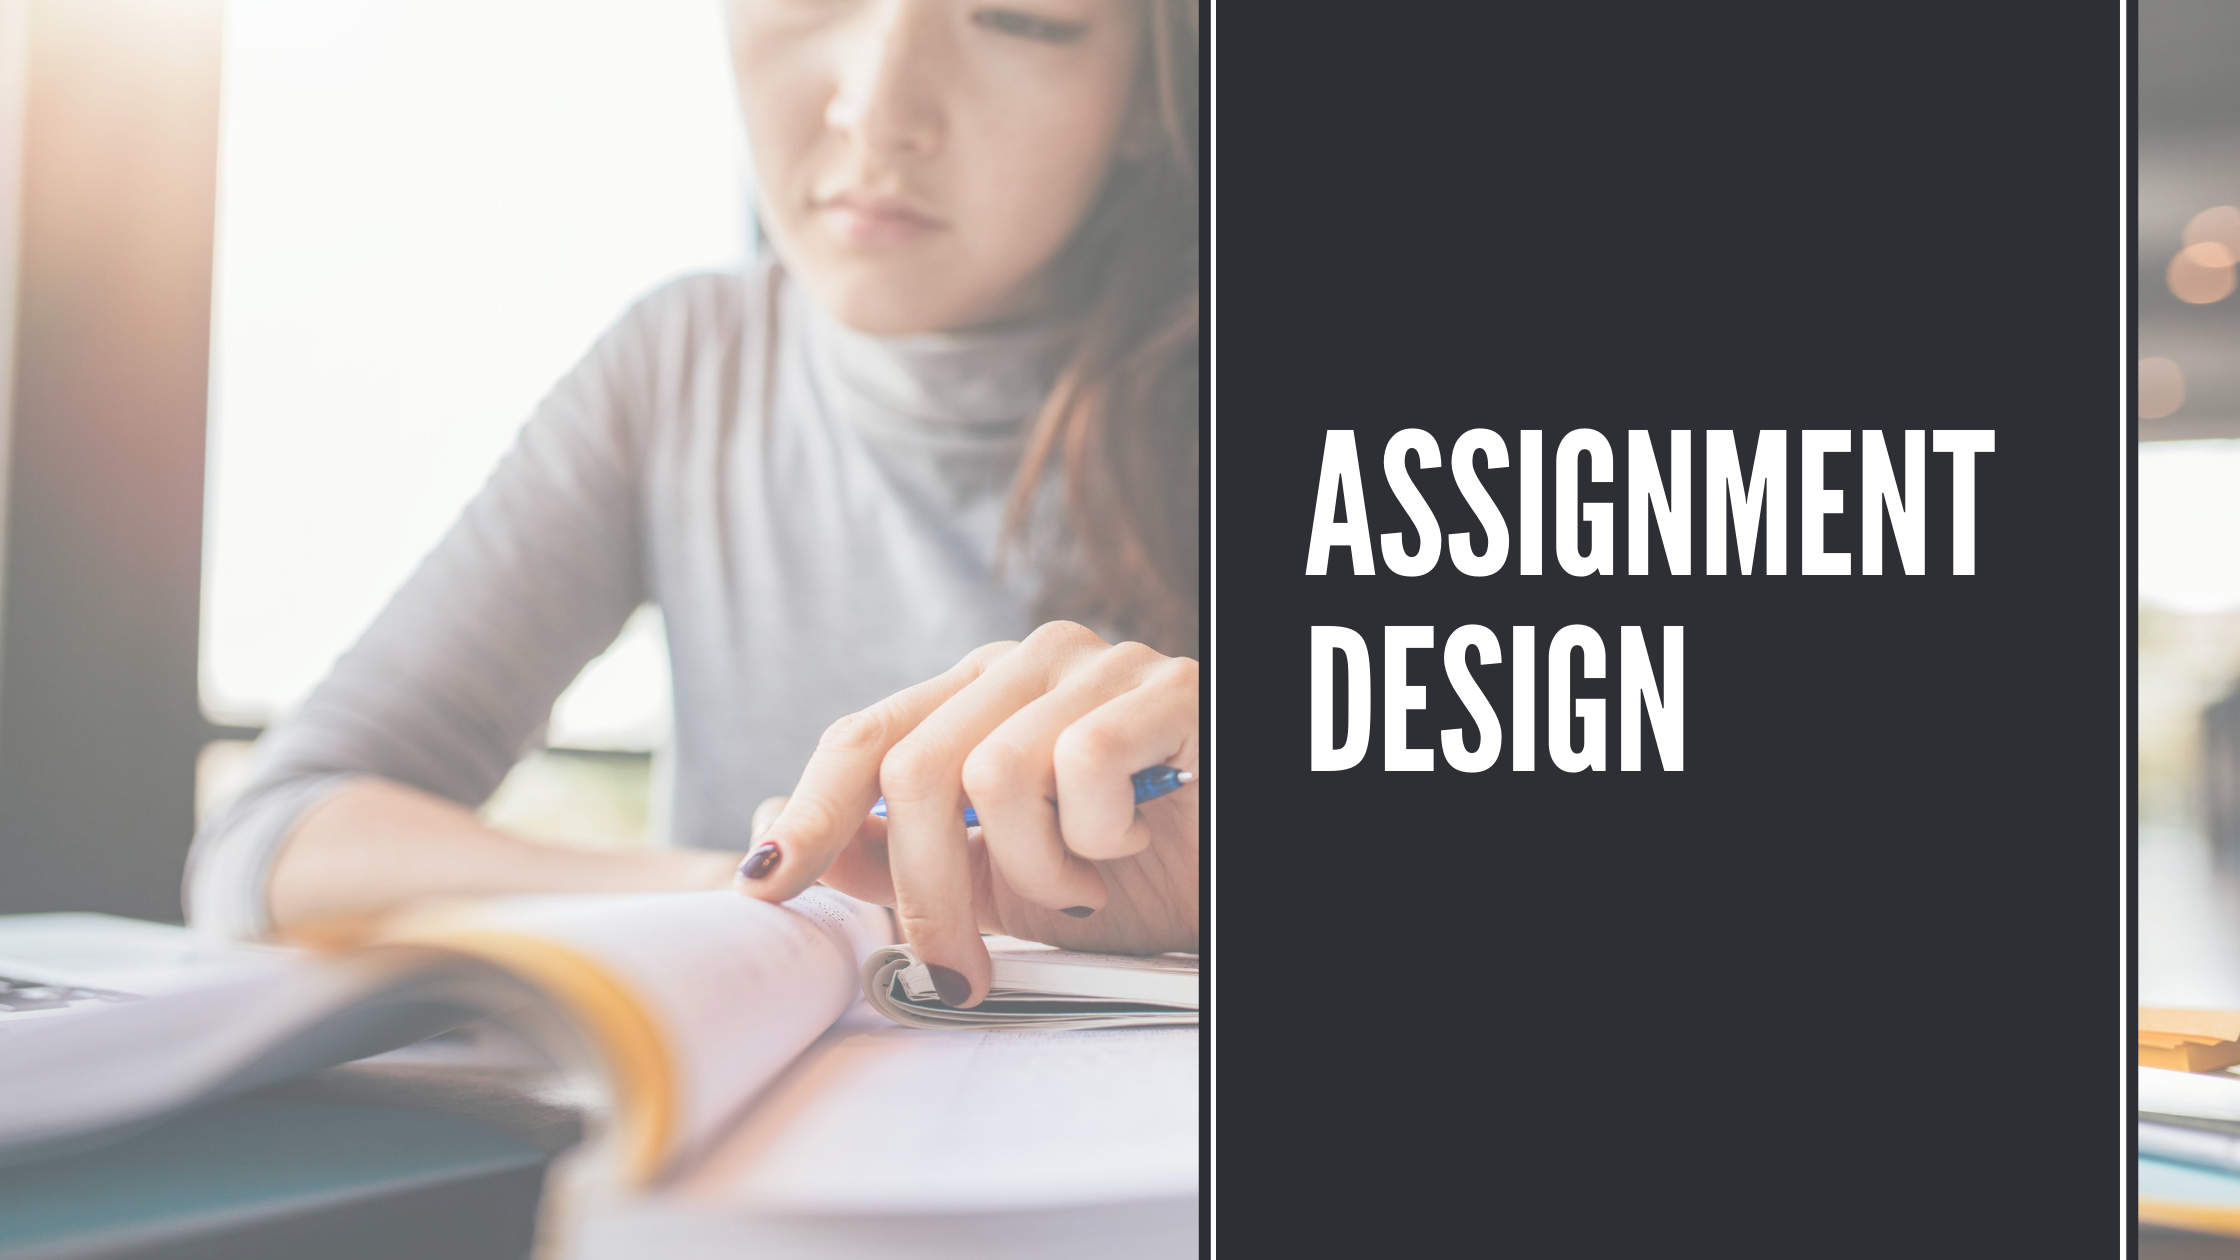 Assignment Design